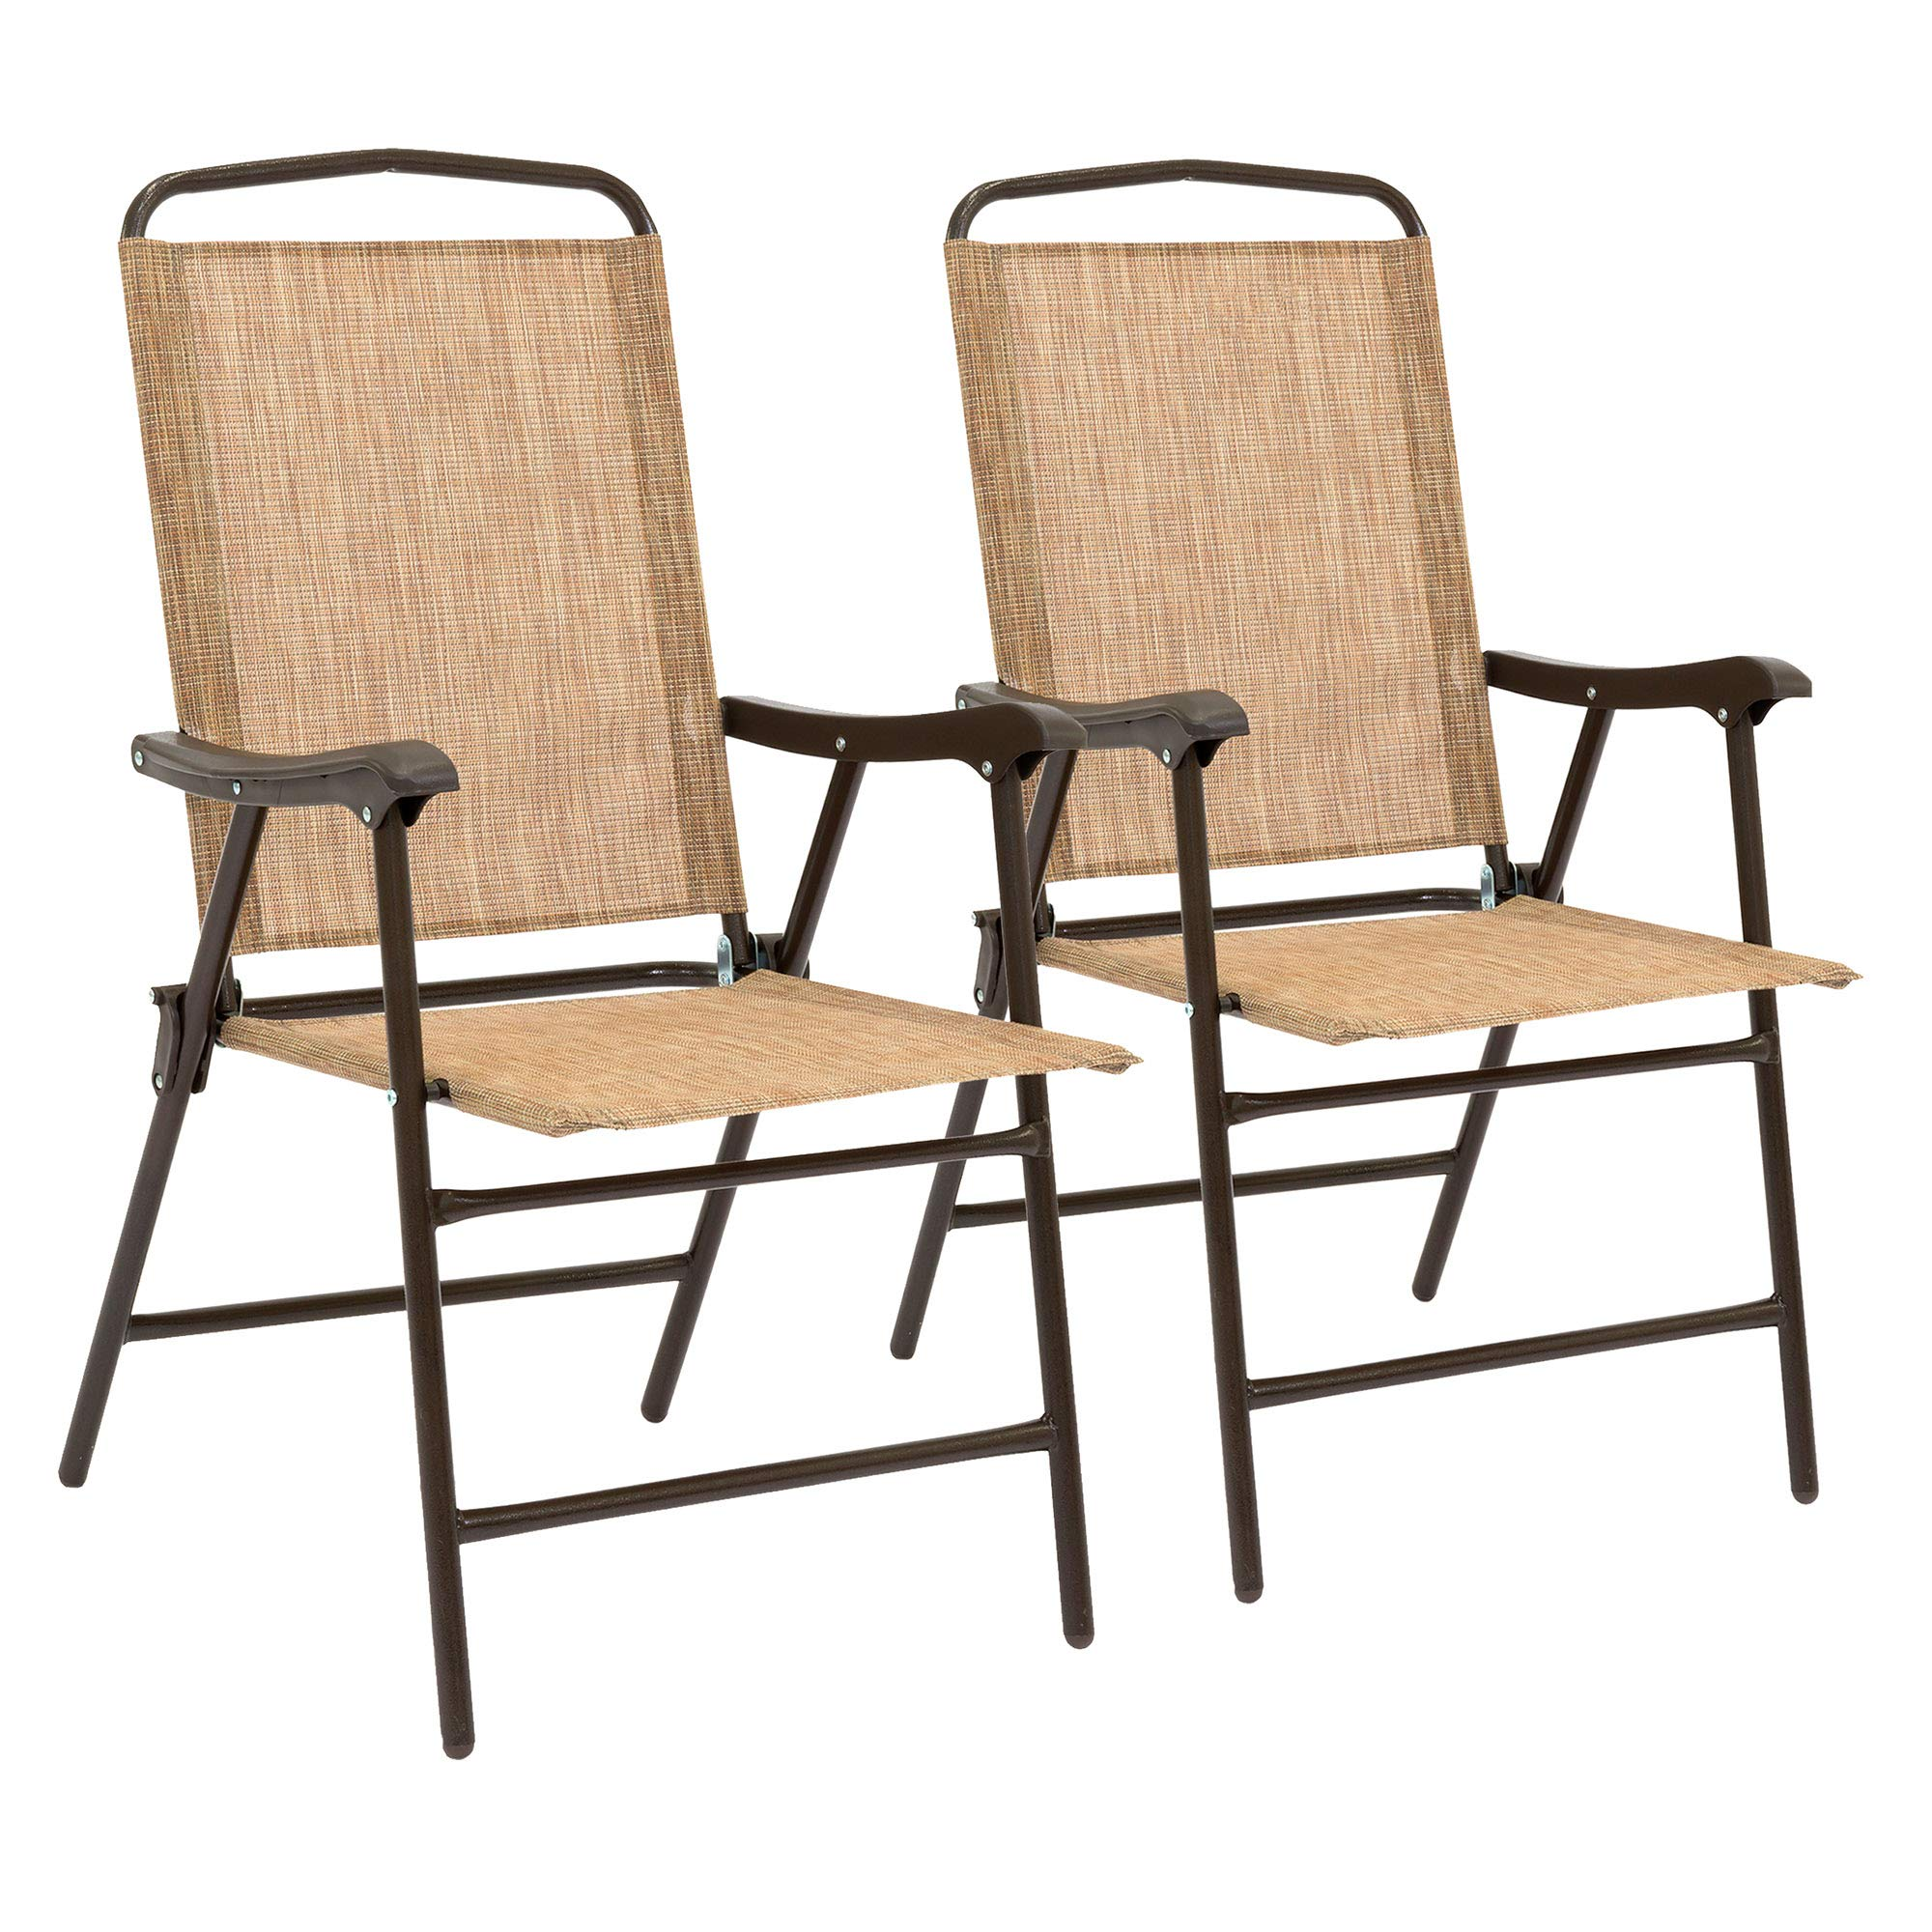 Best Choice Products Set of 2 Weather-Resistant Outdoor Textiline Folding Sling Back Chairs with Metal Frame, Brown by Best Choice Products